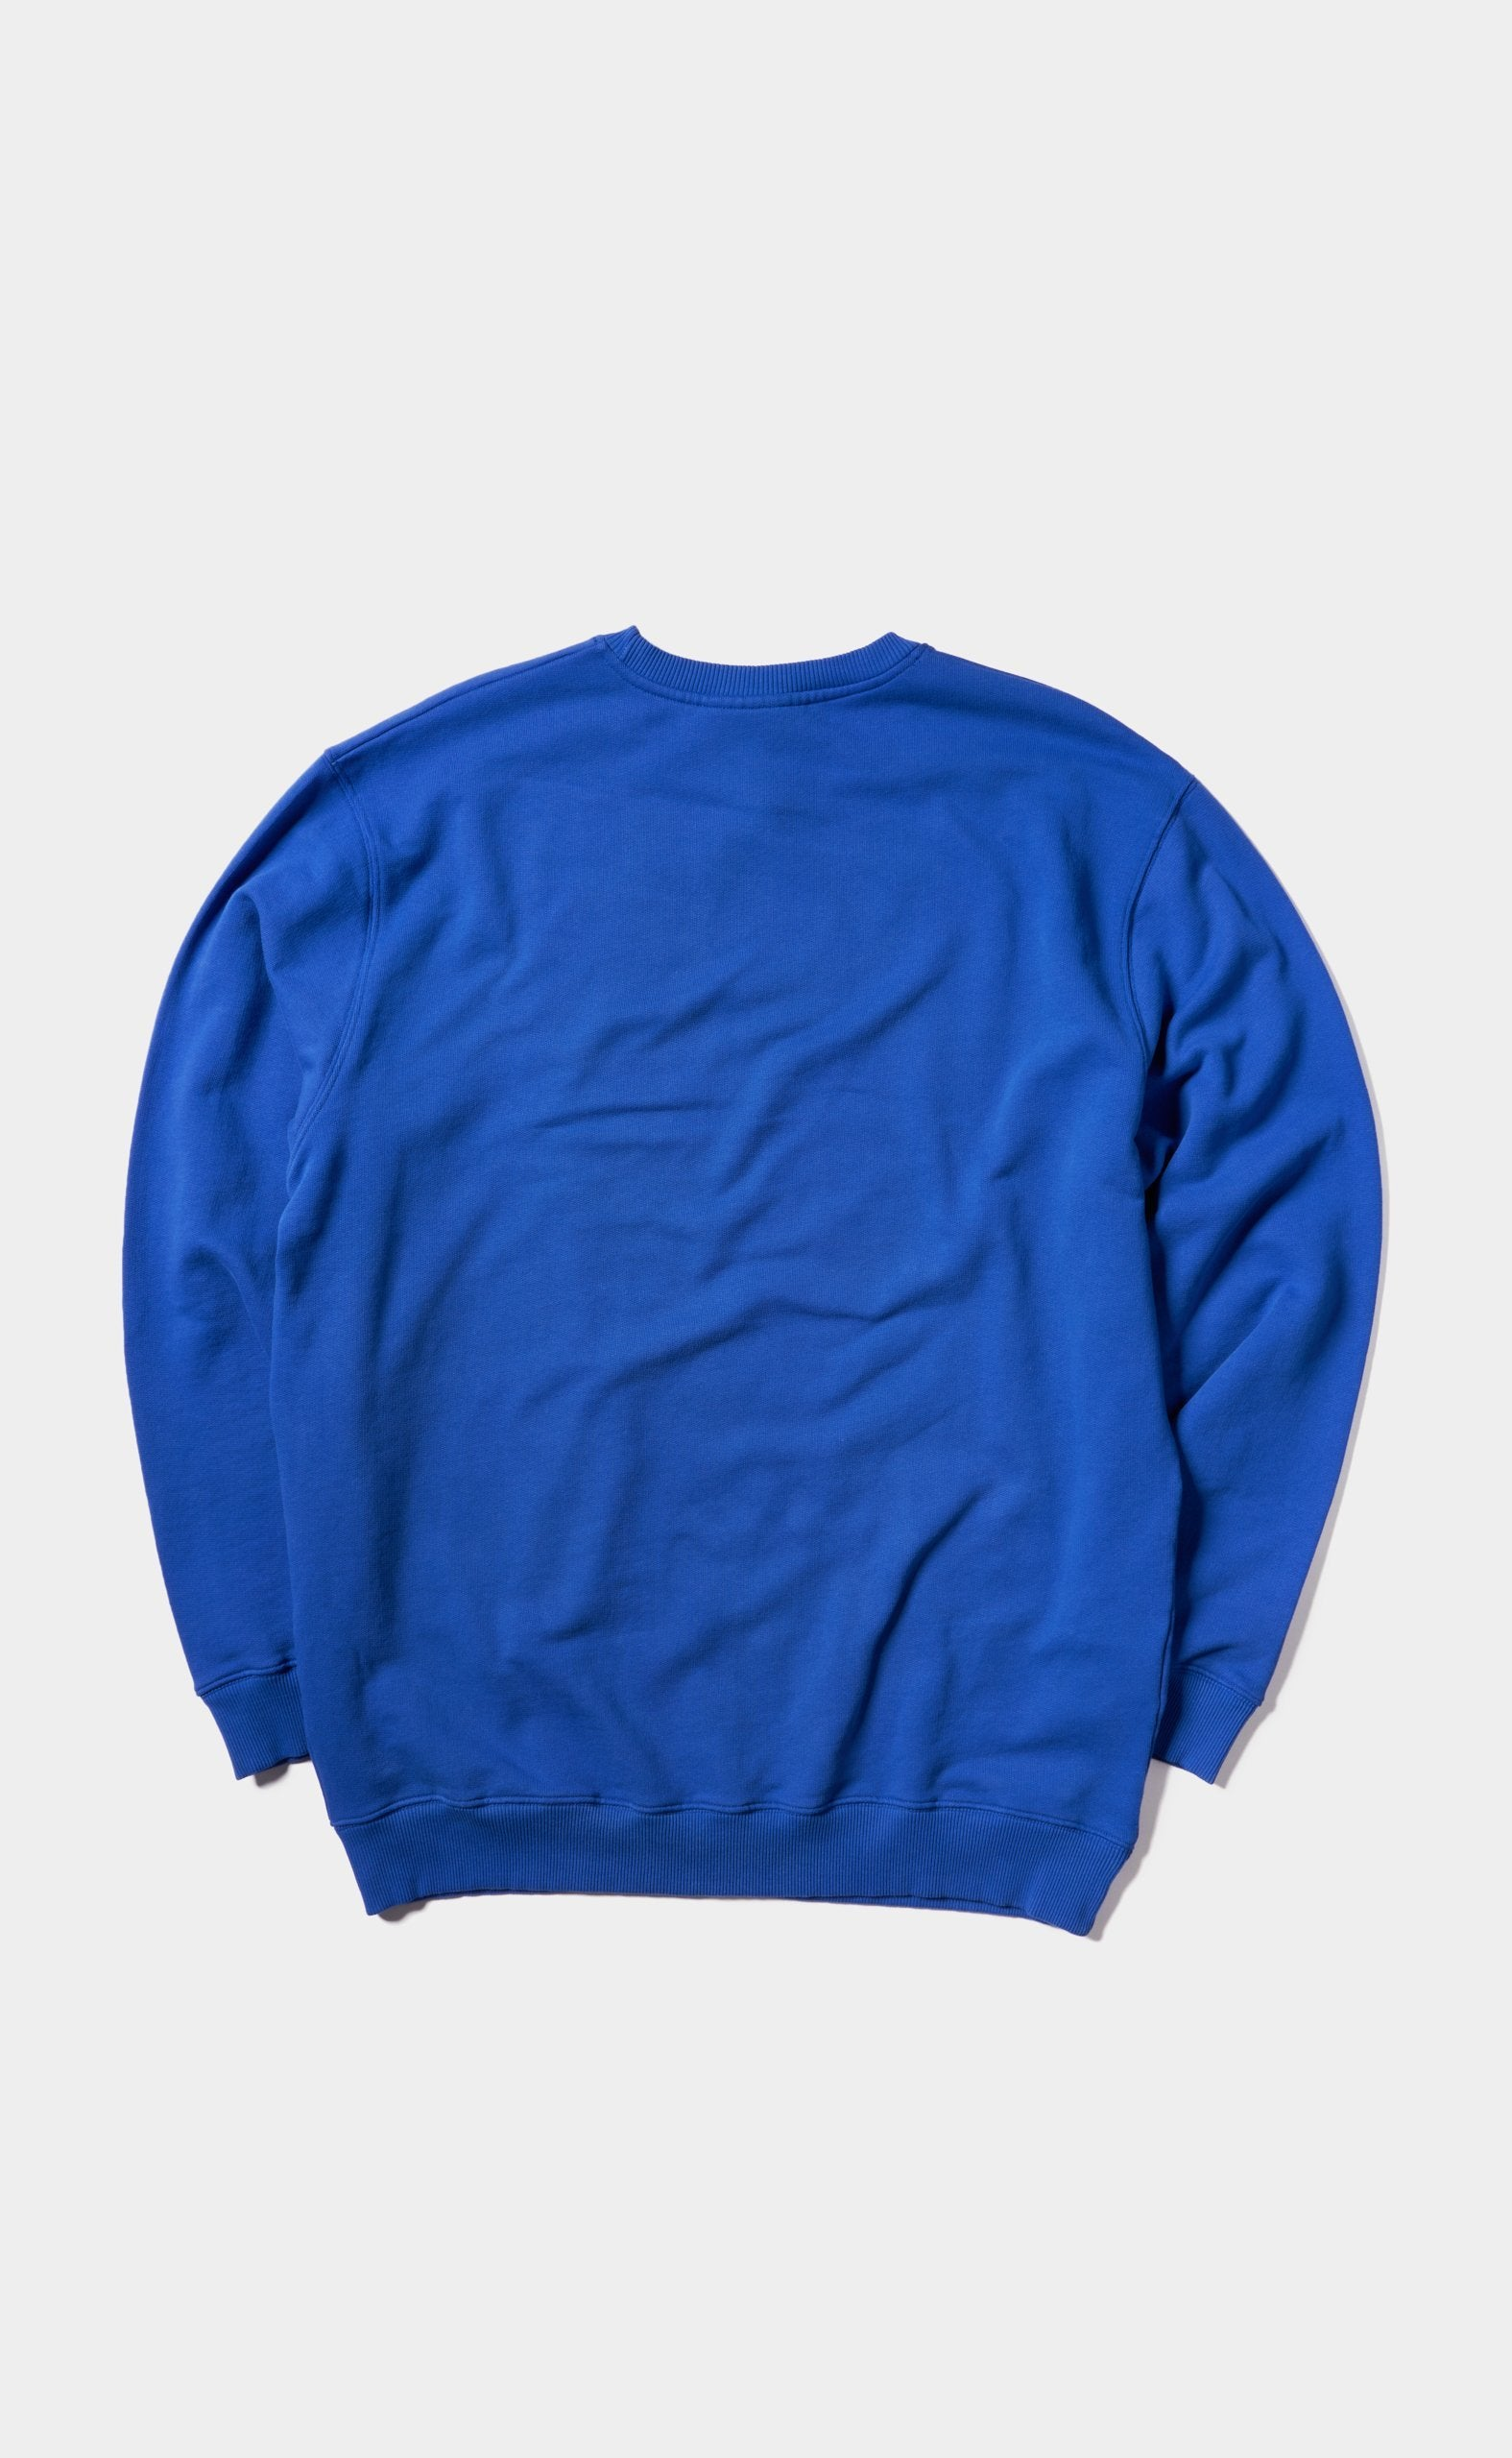 Graphic Sweater Blue - FP Retro